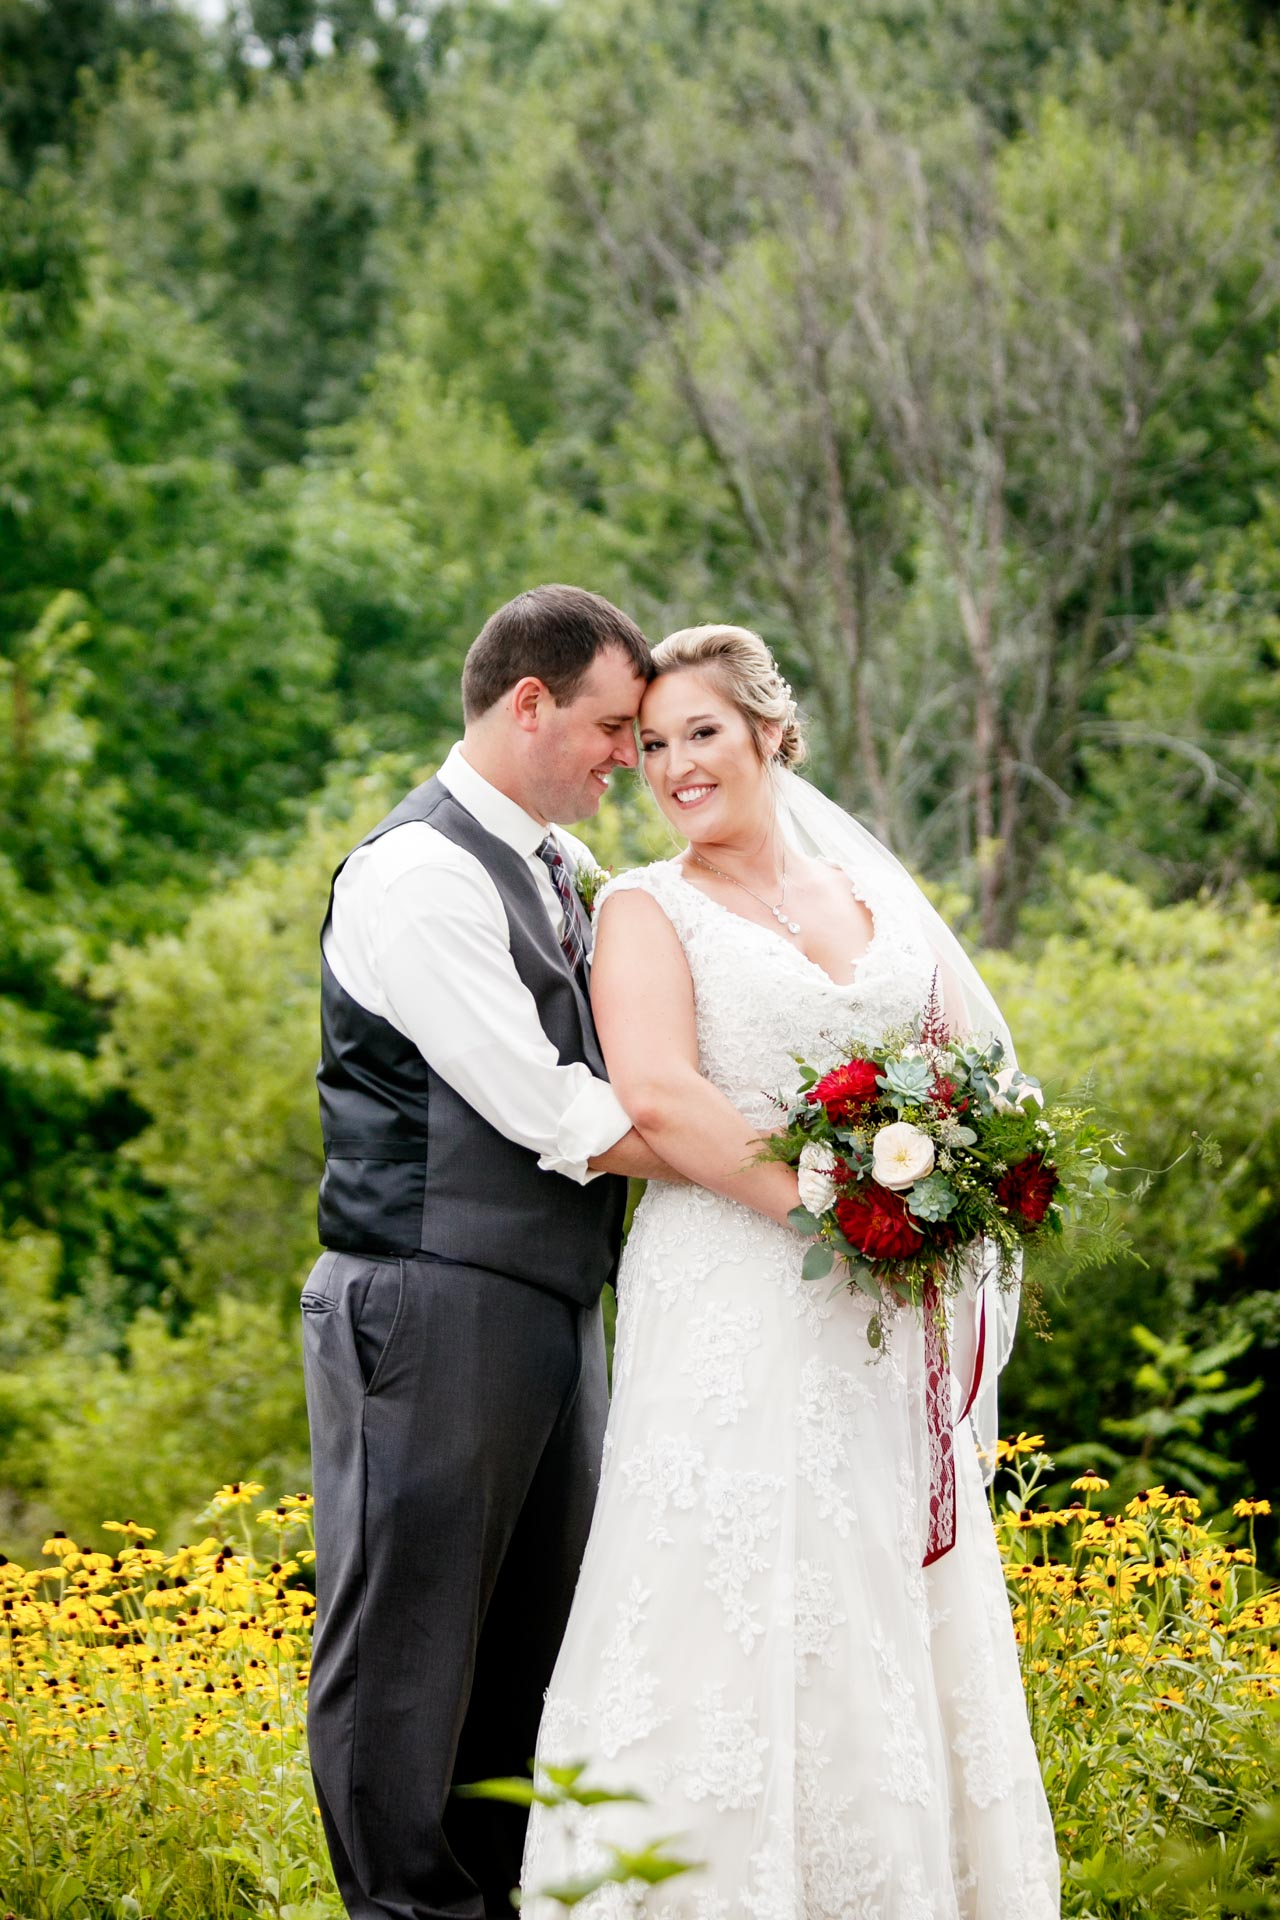 Rain wouldn't soak Sarah and Cory's vision for their wedding day.  It went off without a hitch!